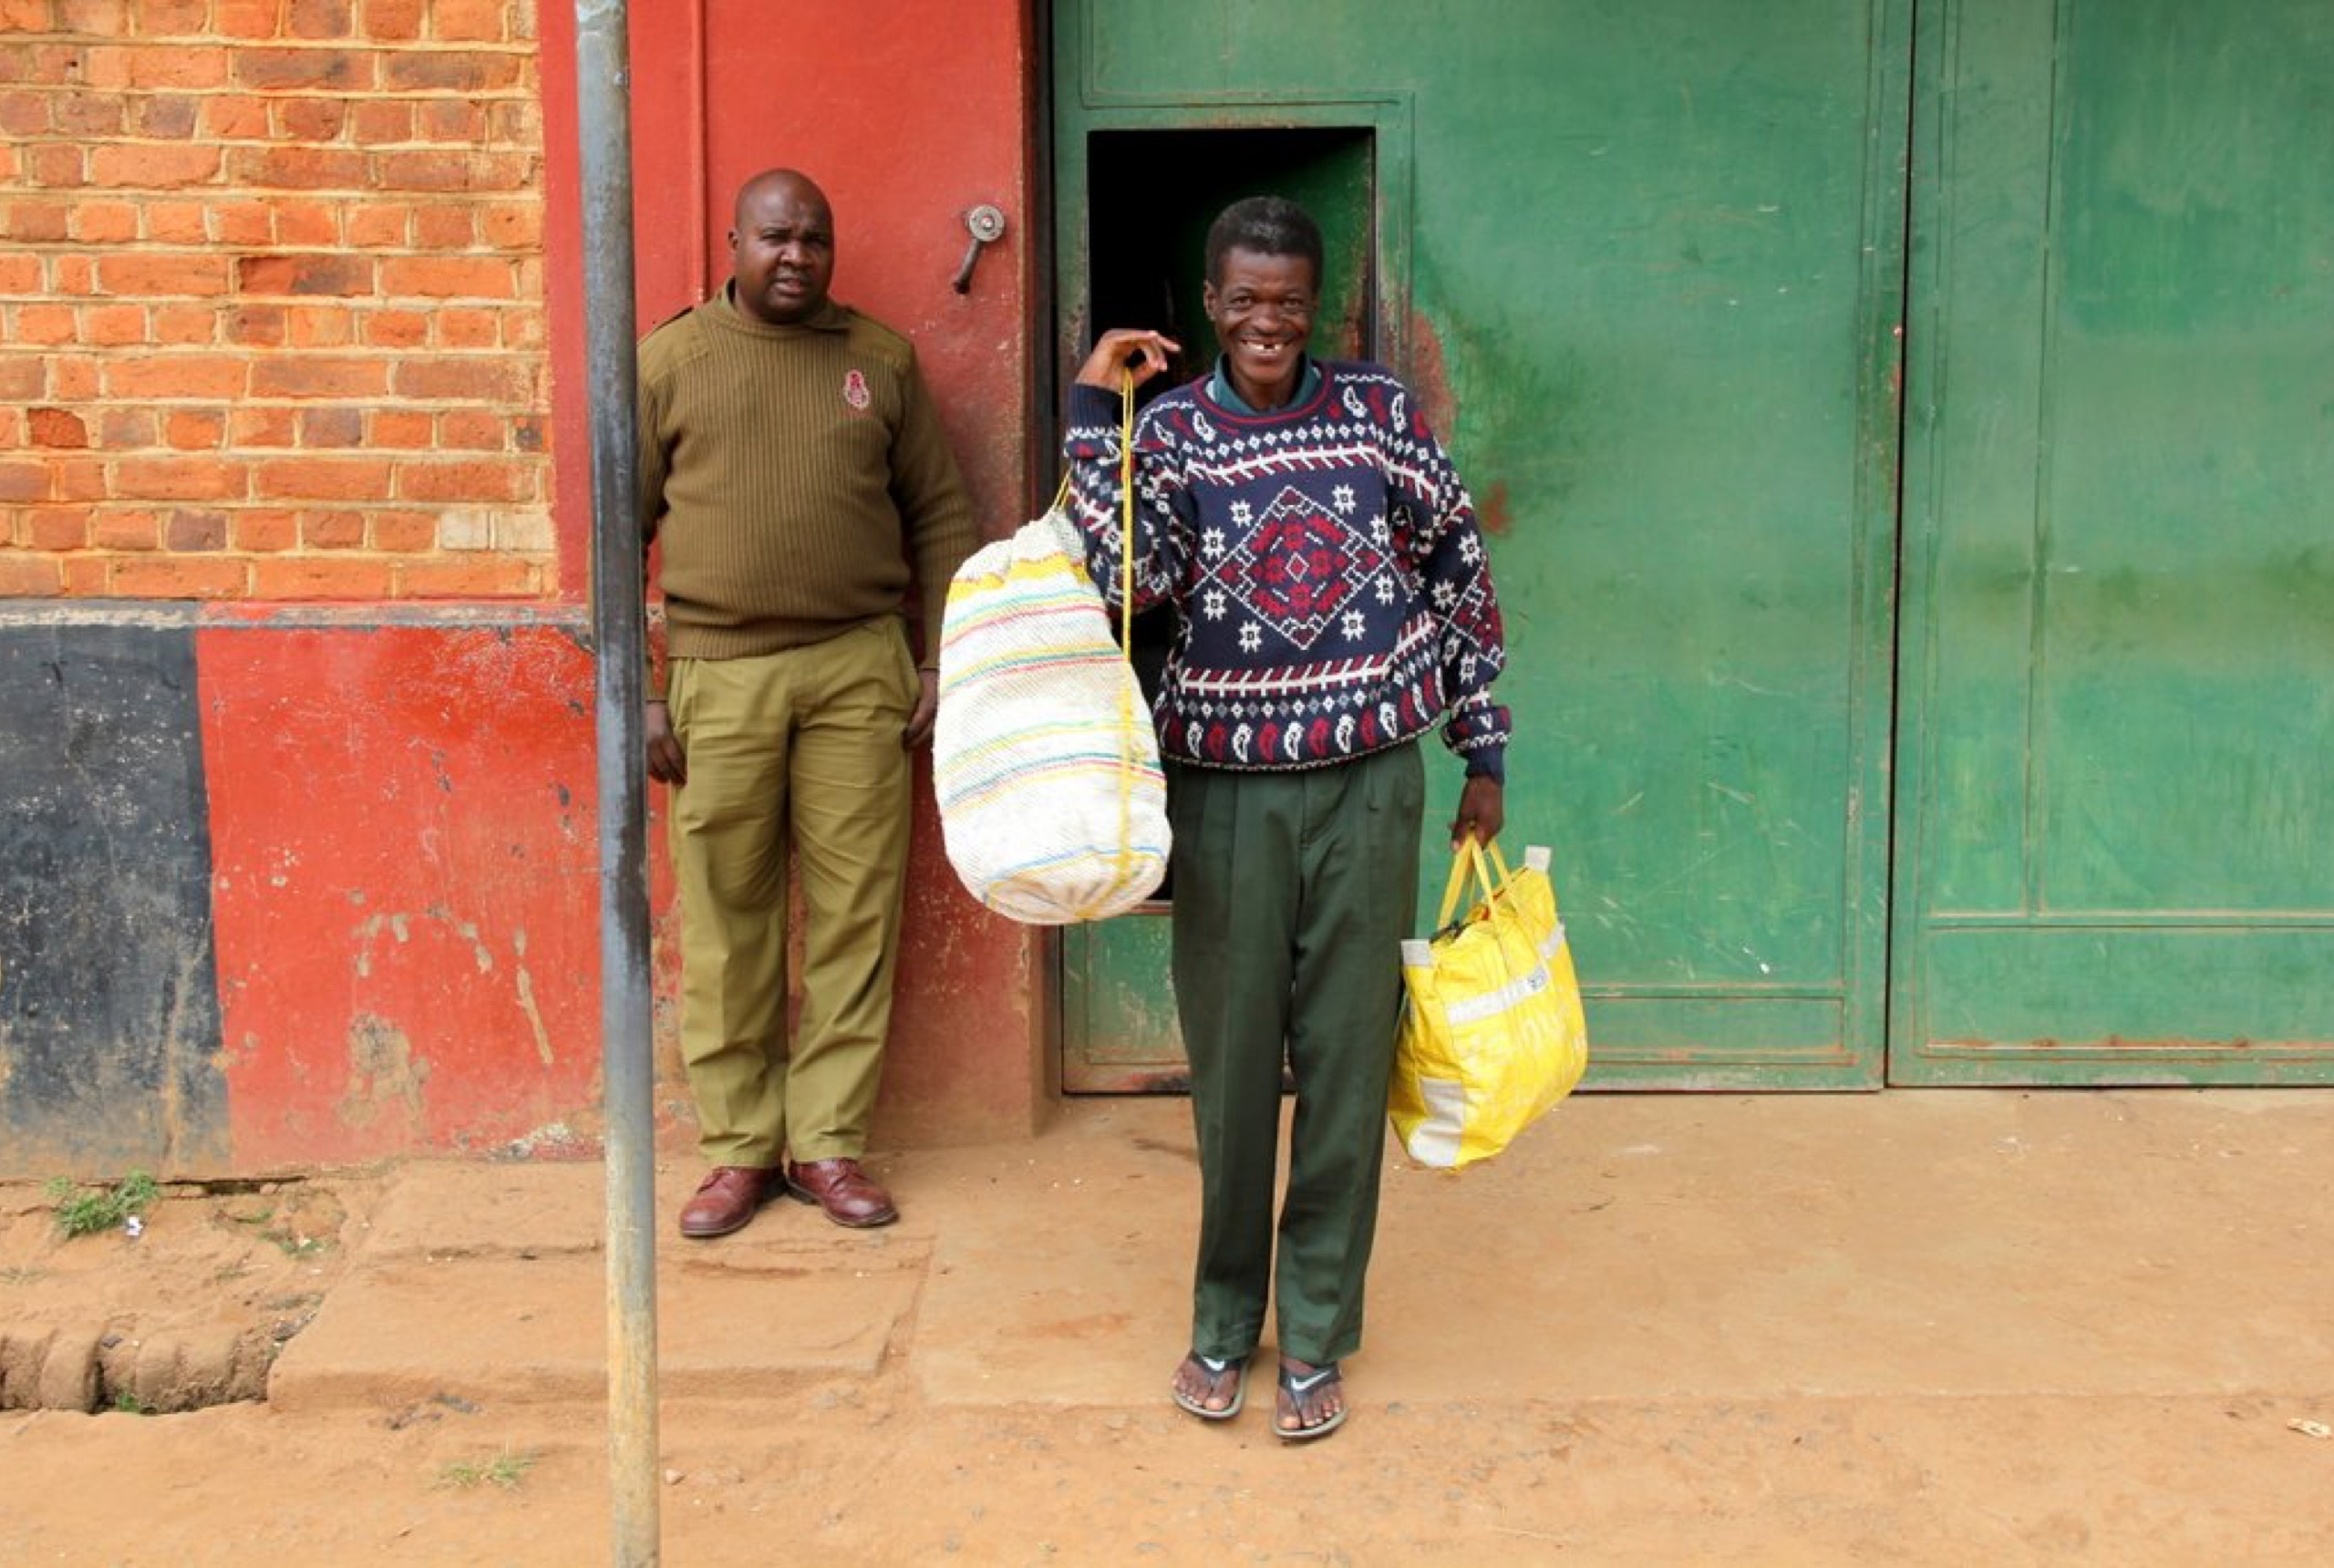 A man in a patterned sweater standing in front of a green and red building and holding two bags, smiling. A man in a brown shirt is standing in the back.